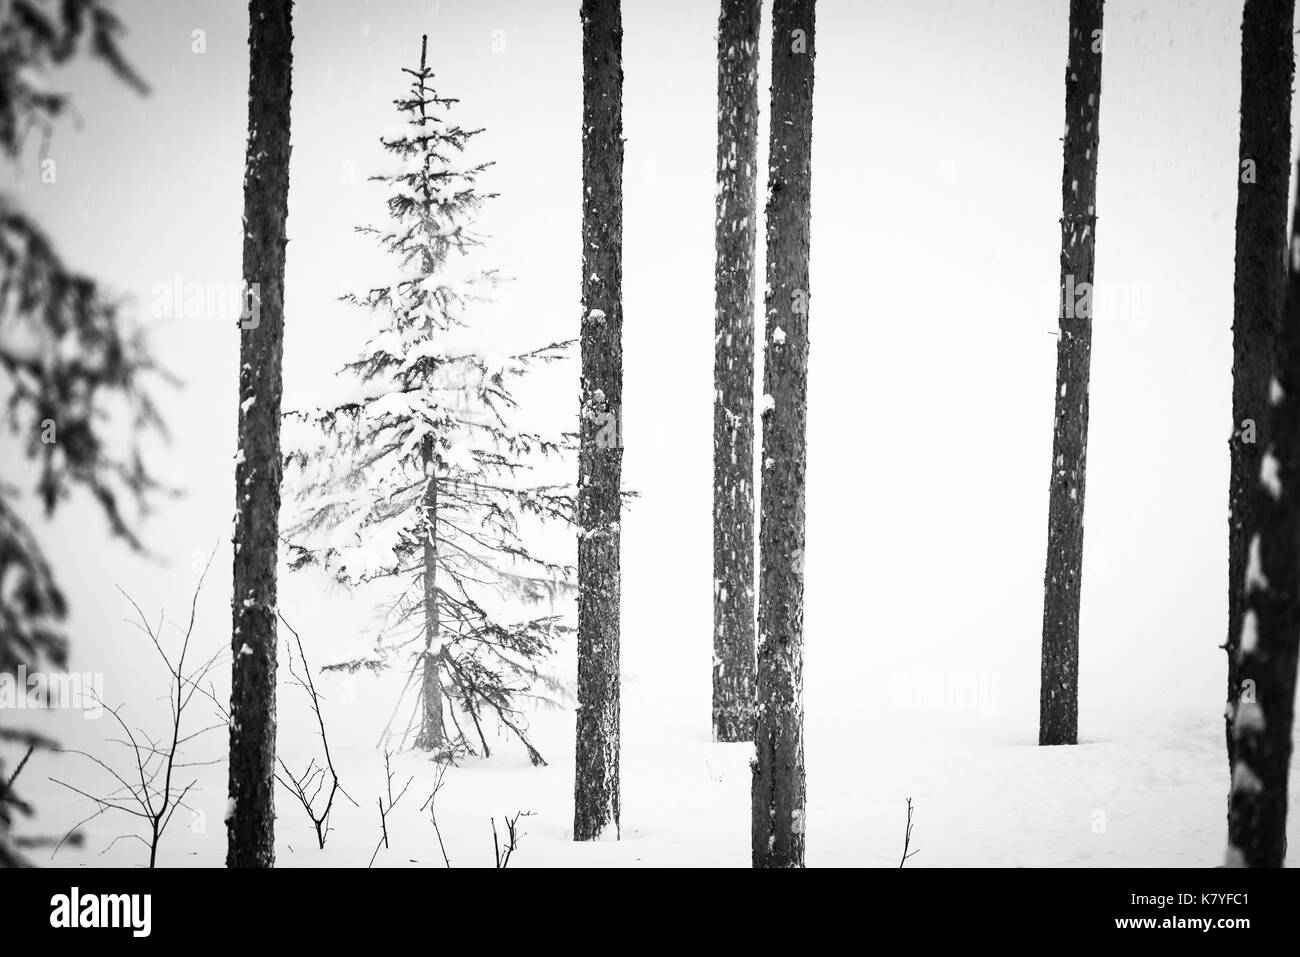 Part of a series of a snowy scene with a pine tree emerging from the white, Finland - Stock Image